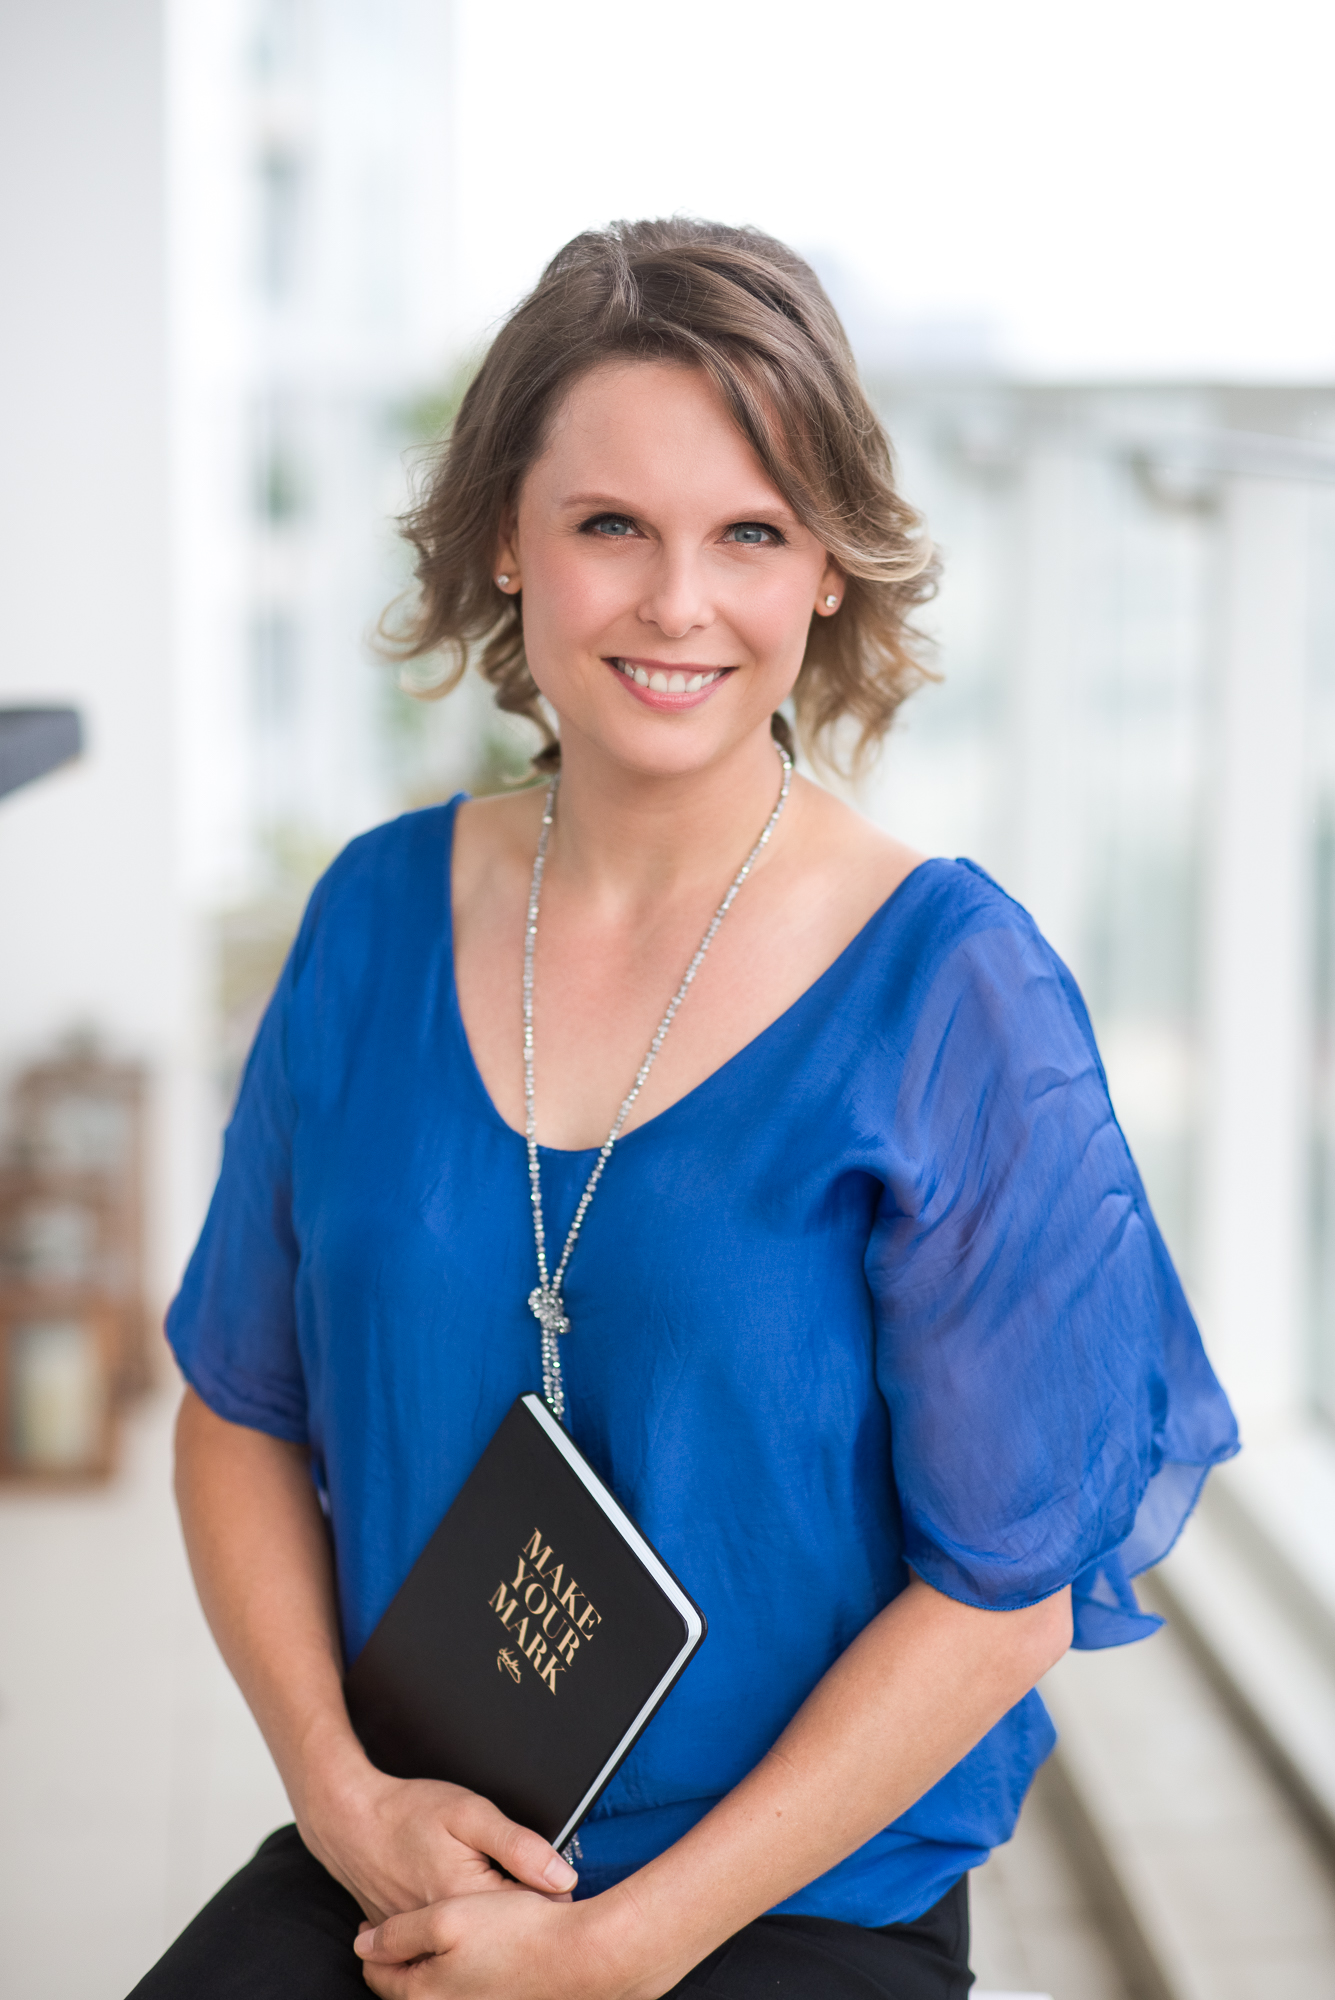 Sarah Cole wearing a blue top sitting with a book, posing for the camera